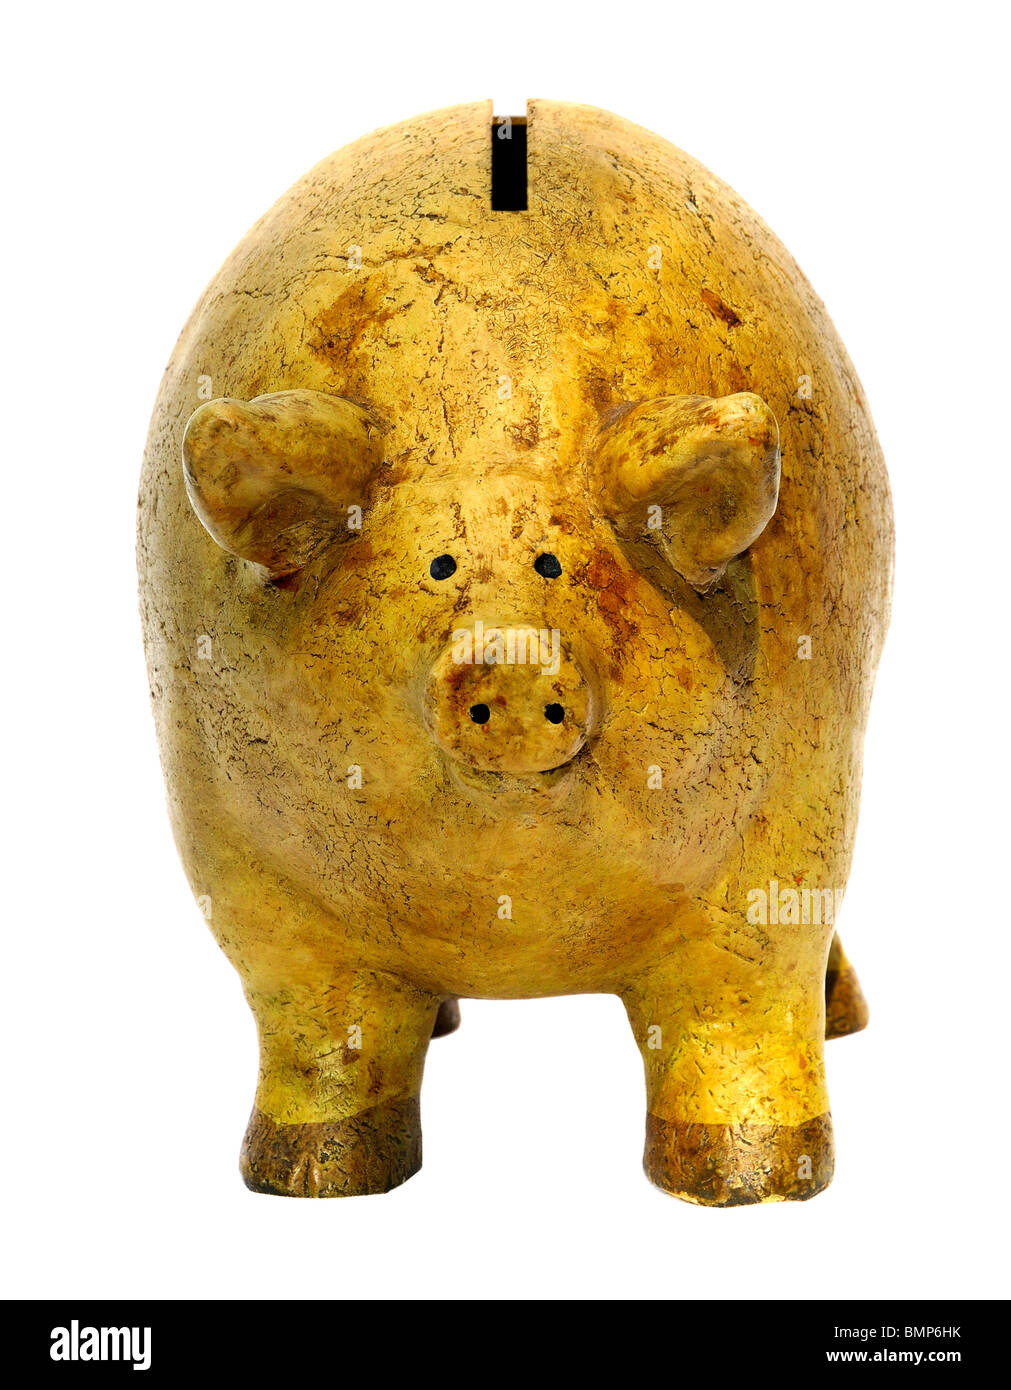 Worn out old piggy bank with pig showing look of frustration. 'Tired of saving pennies'? - Stock Image